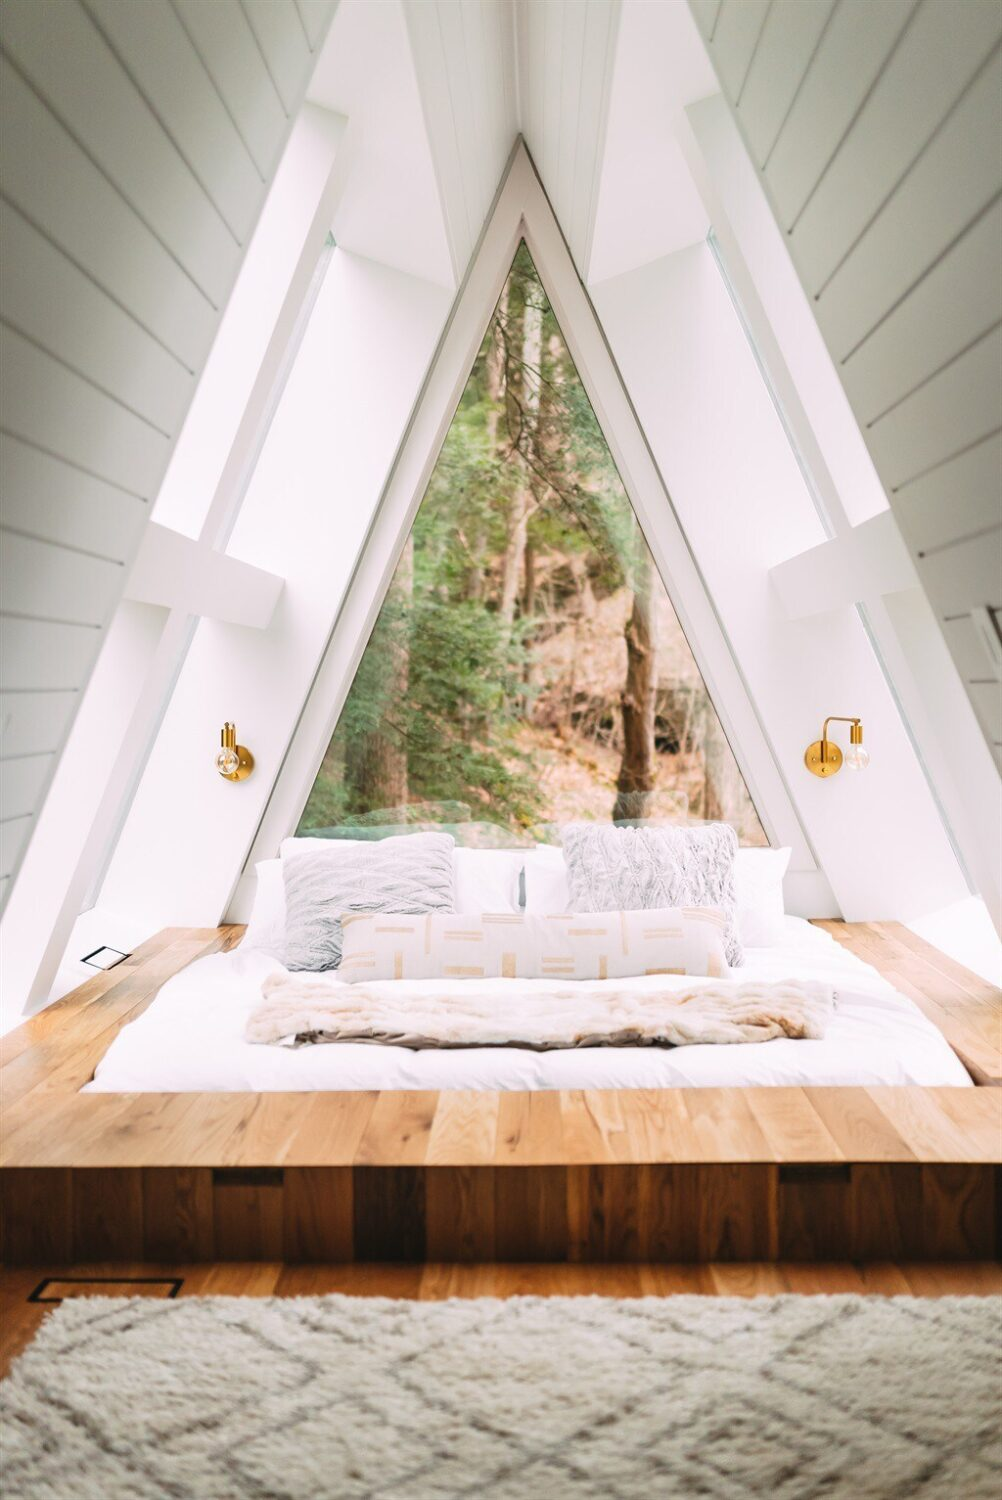 a-frame-cabin-airbnb-ohio-nordroom